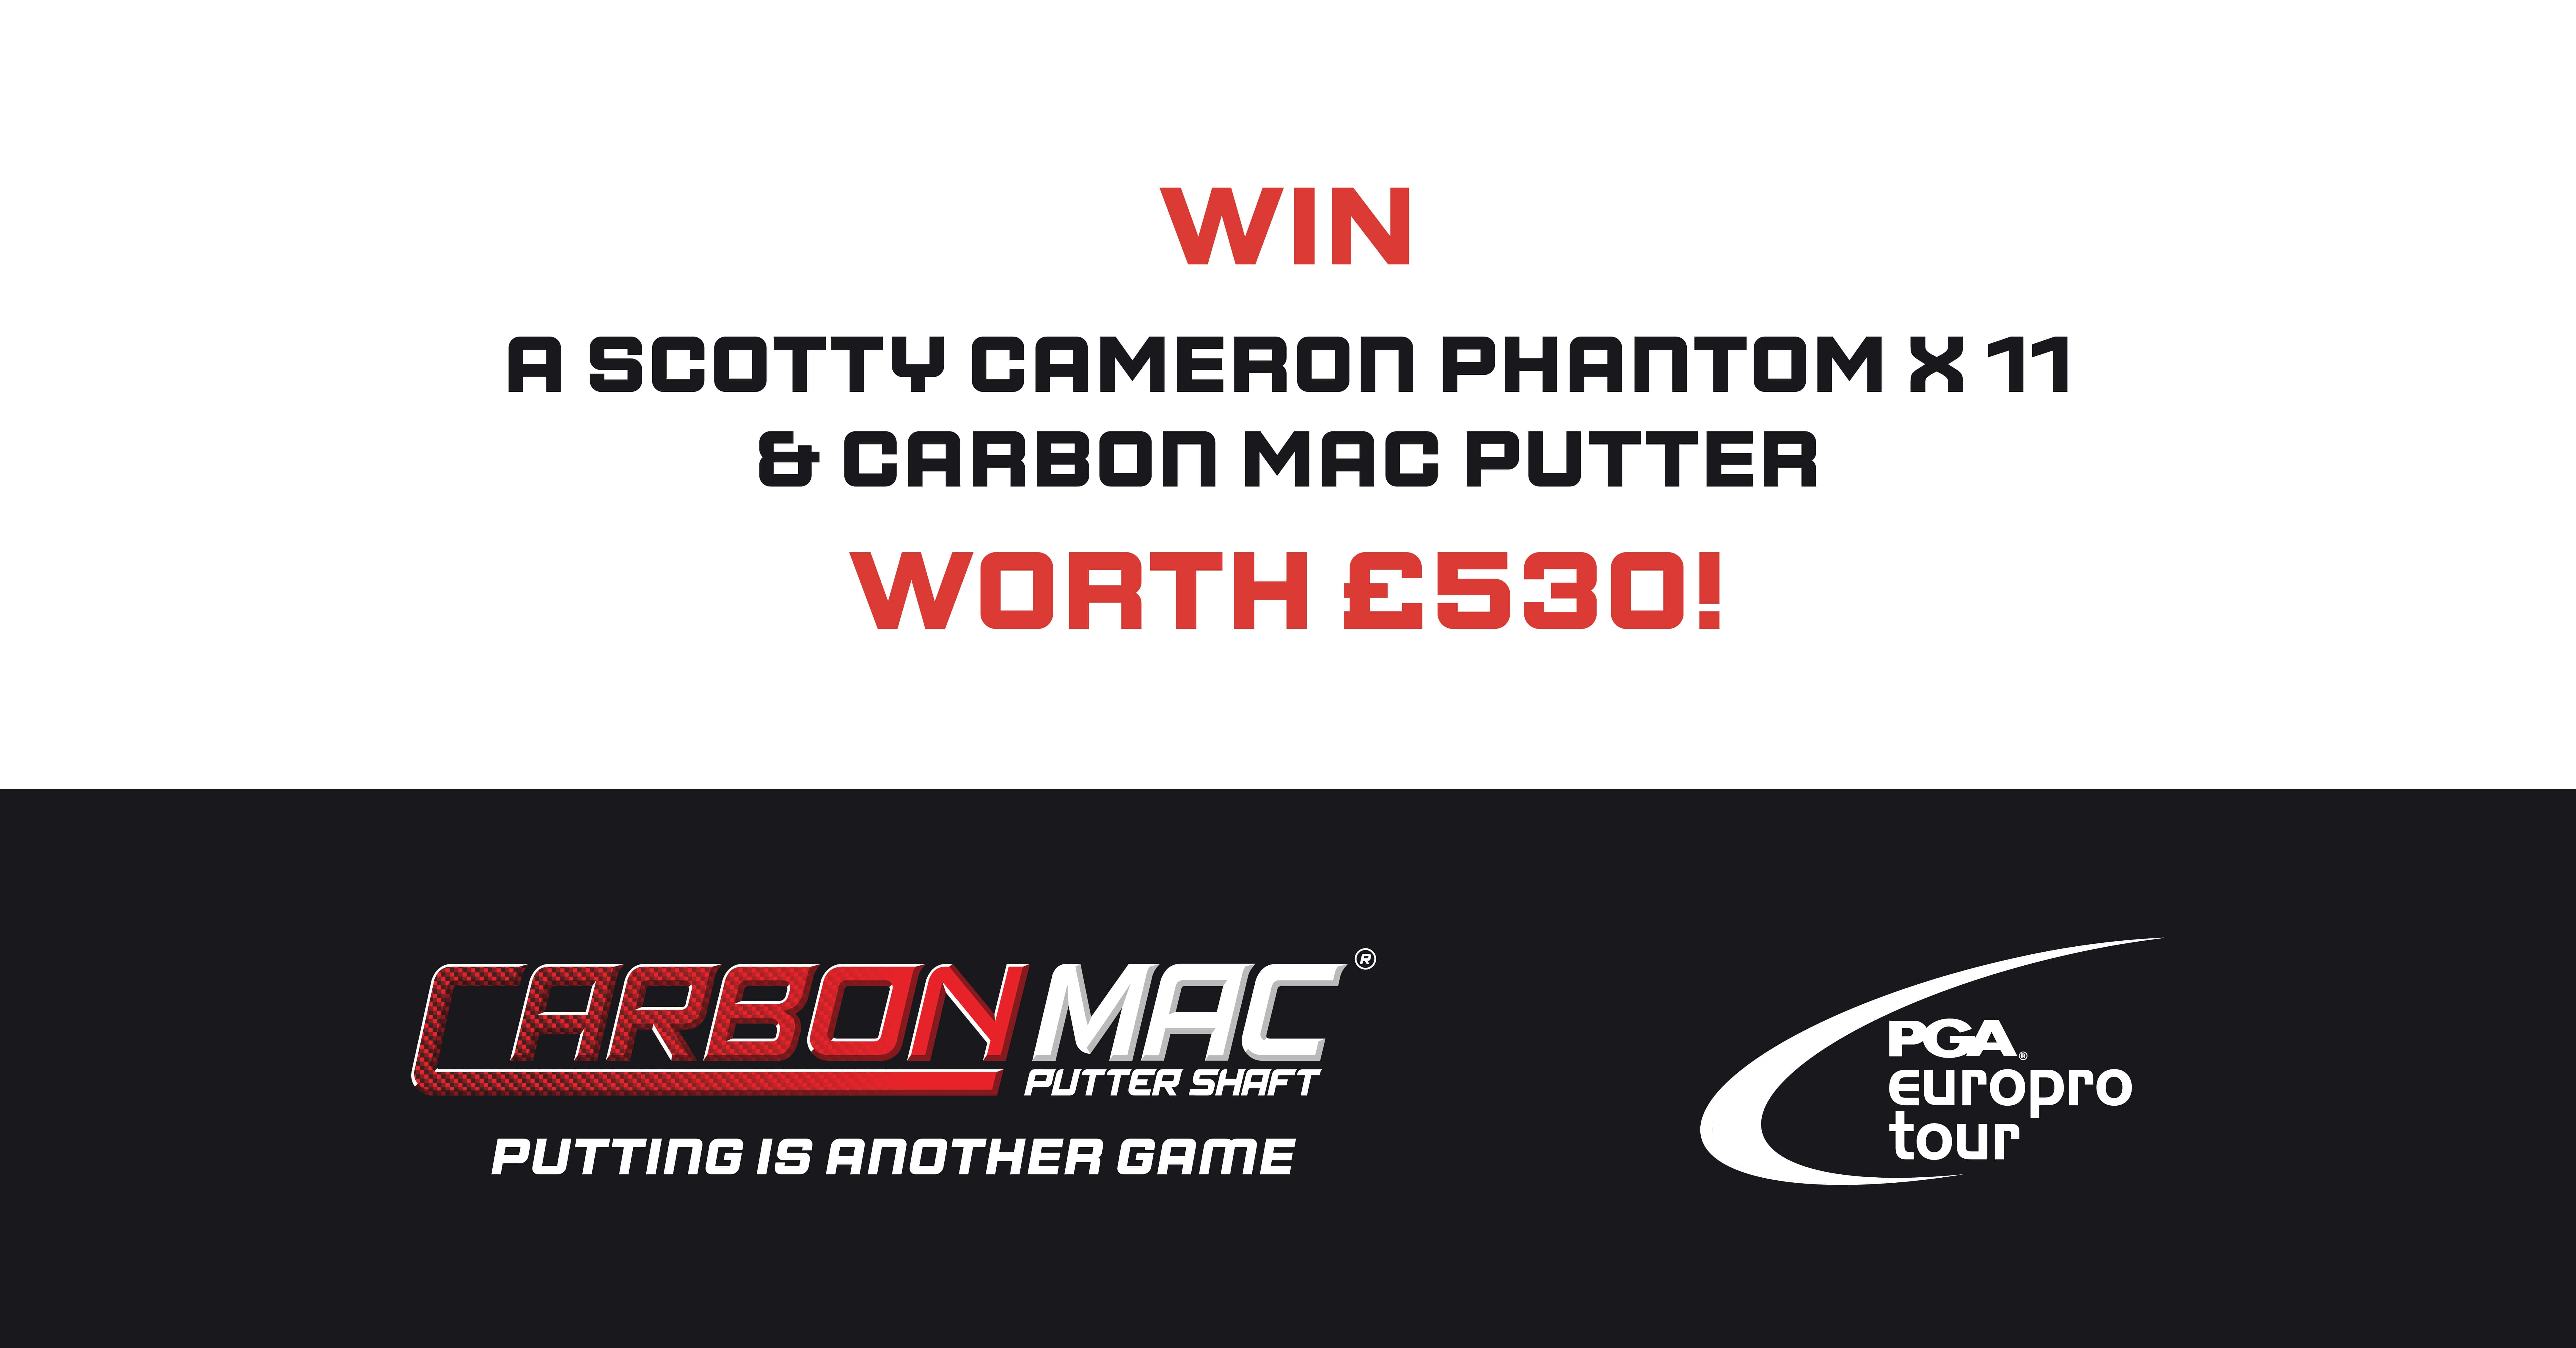 Win a Free Golf Putter Worth Over £530